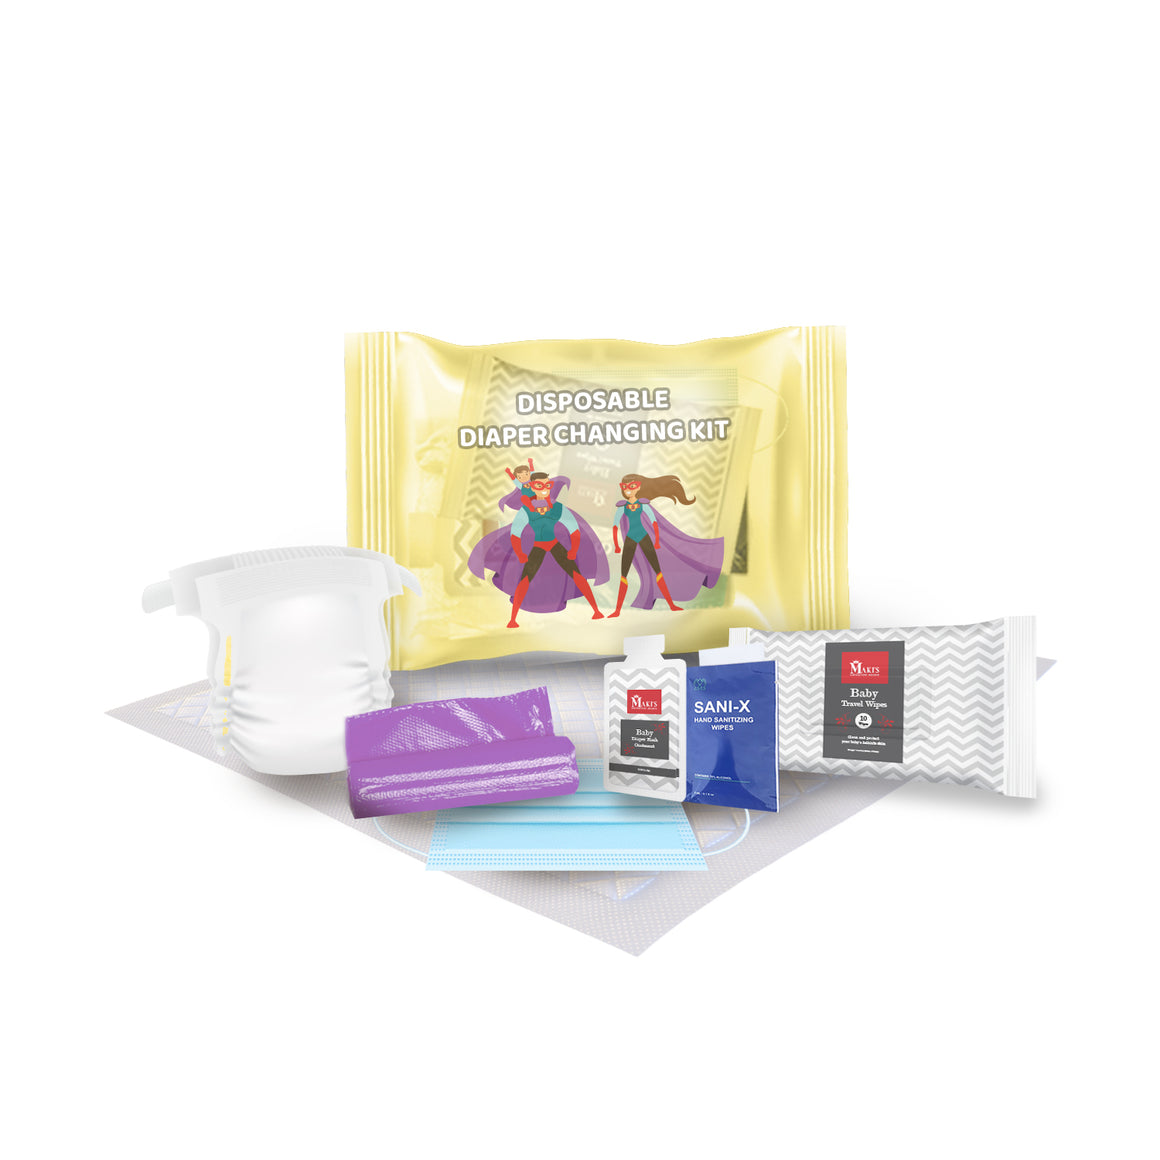 Disposable Size 5 Diaper Changing Kits for Baby On-The-Go